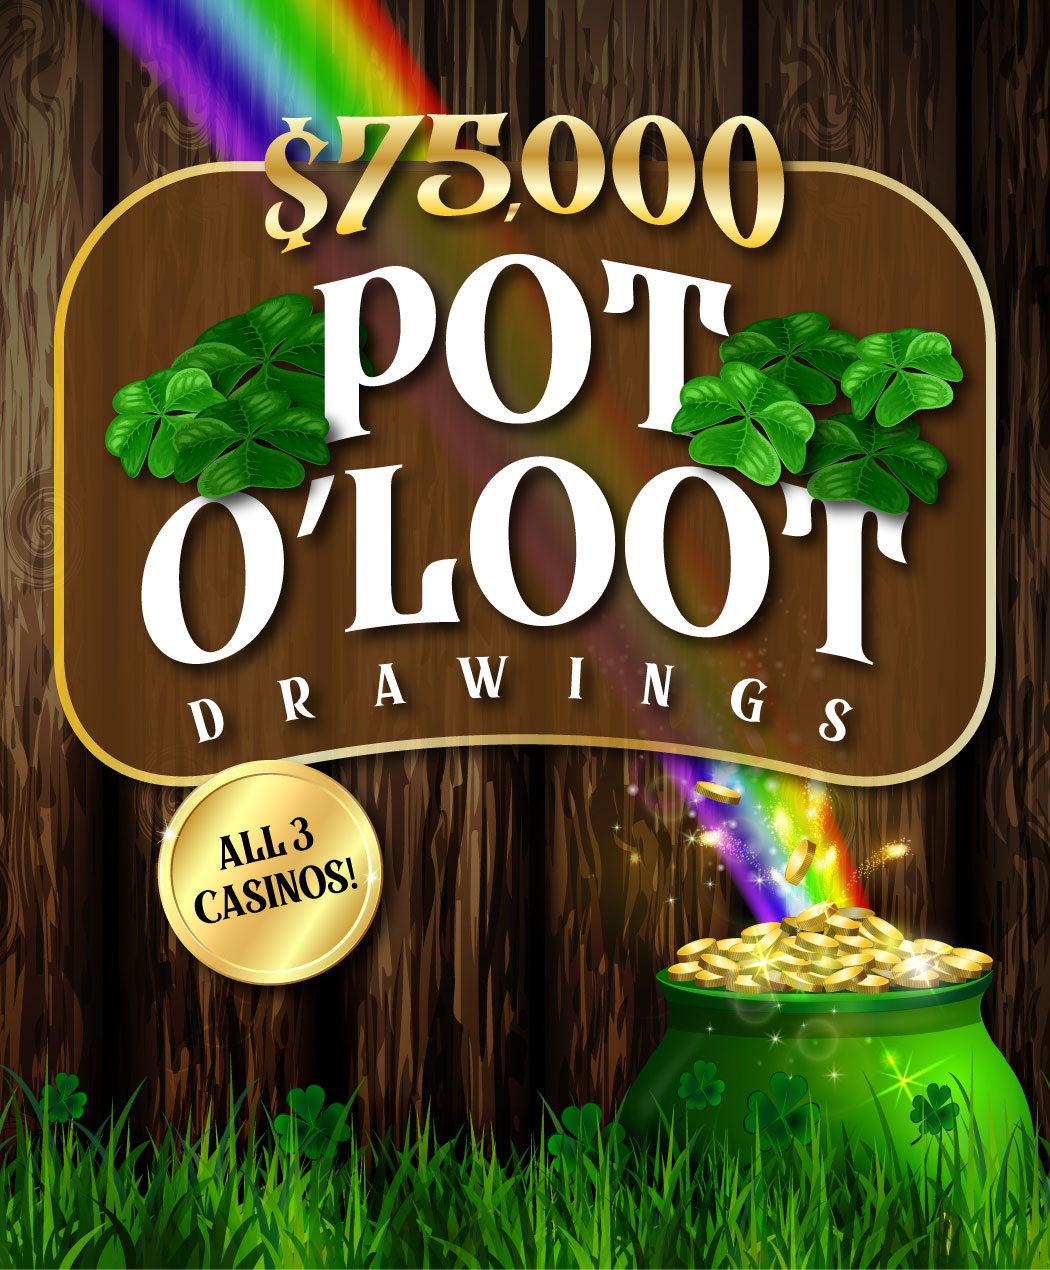 $75,000 Pot O' Loot Drawings